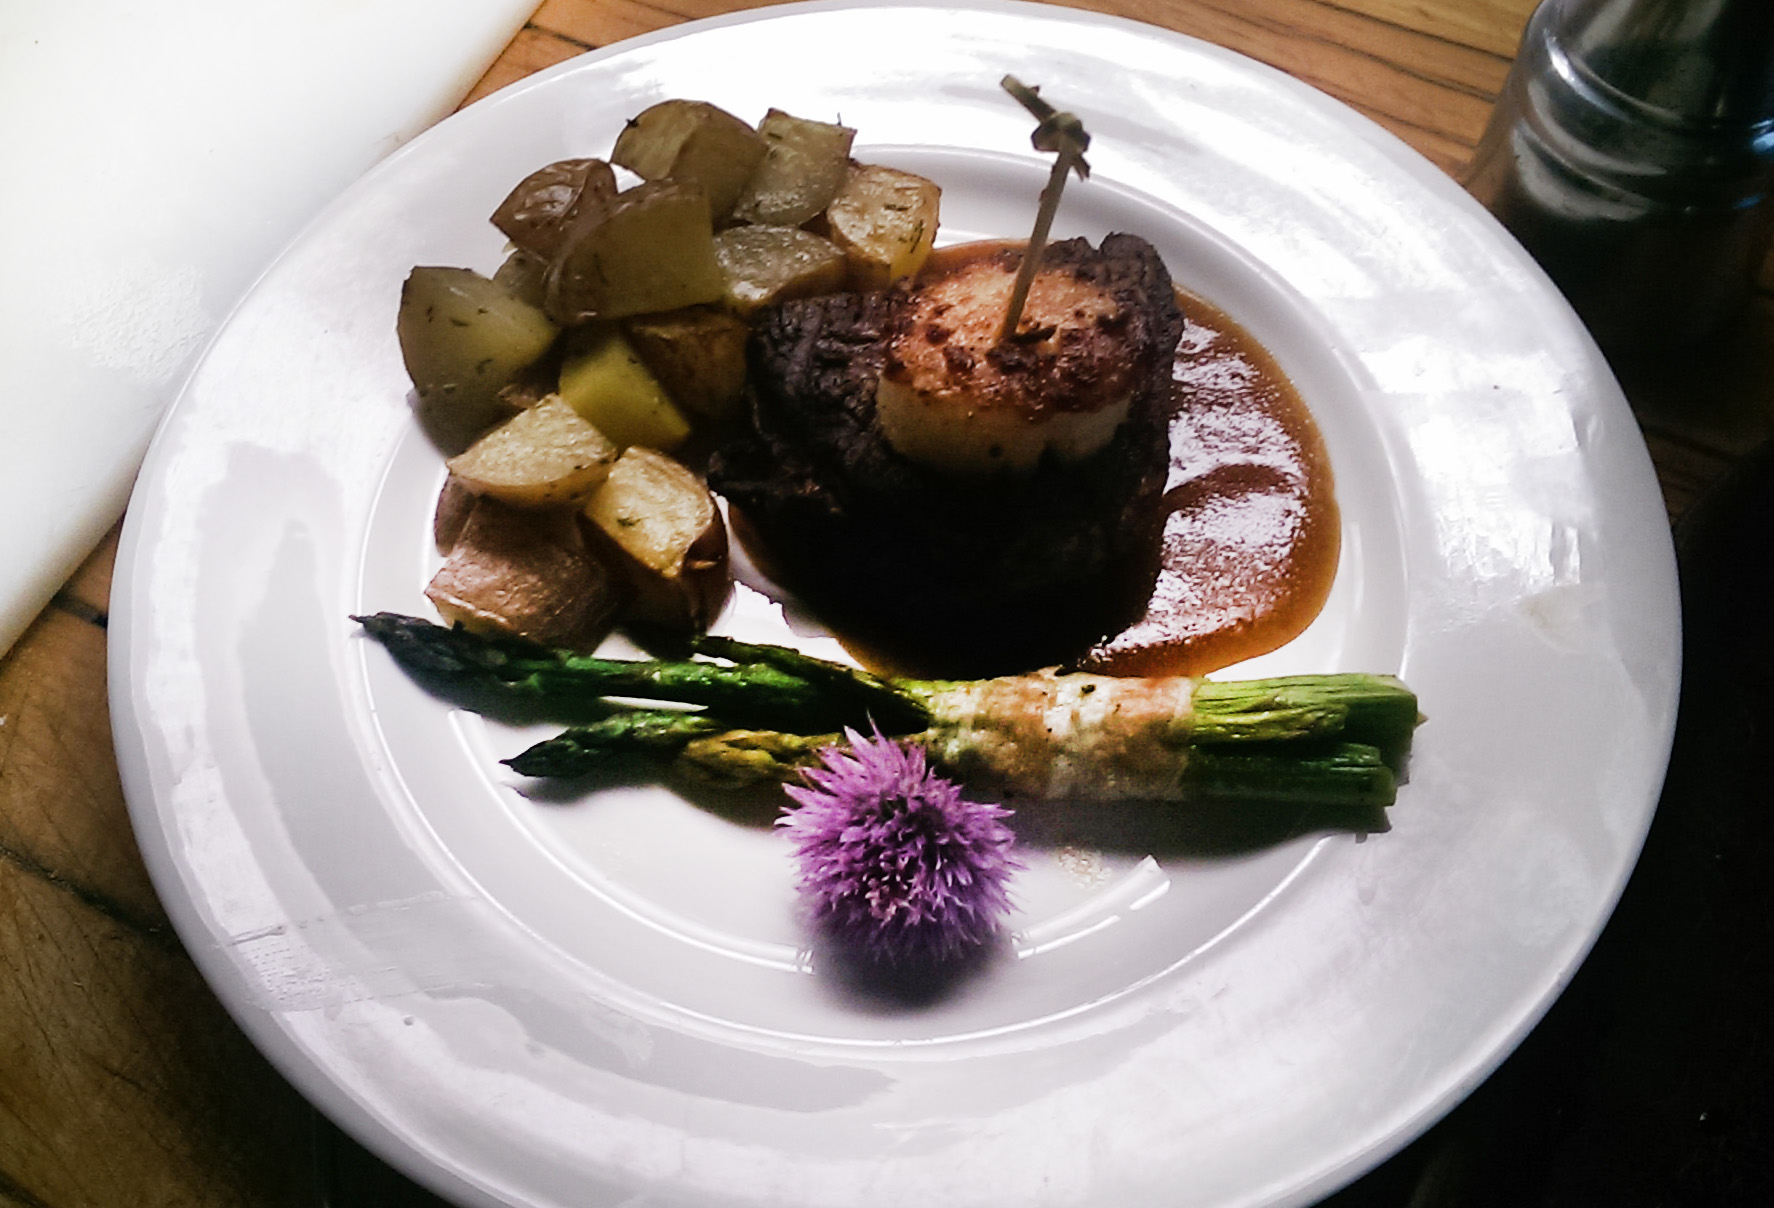 Filet and Seared Scallop Surf and Turf with Prosciutto Wrapped Asparagus and Roasted Potatoes